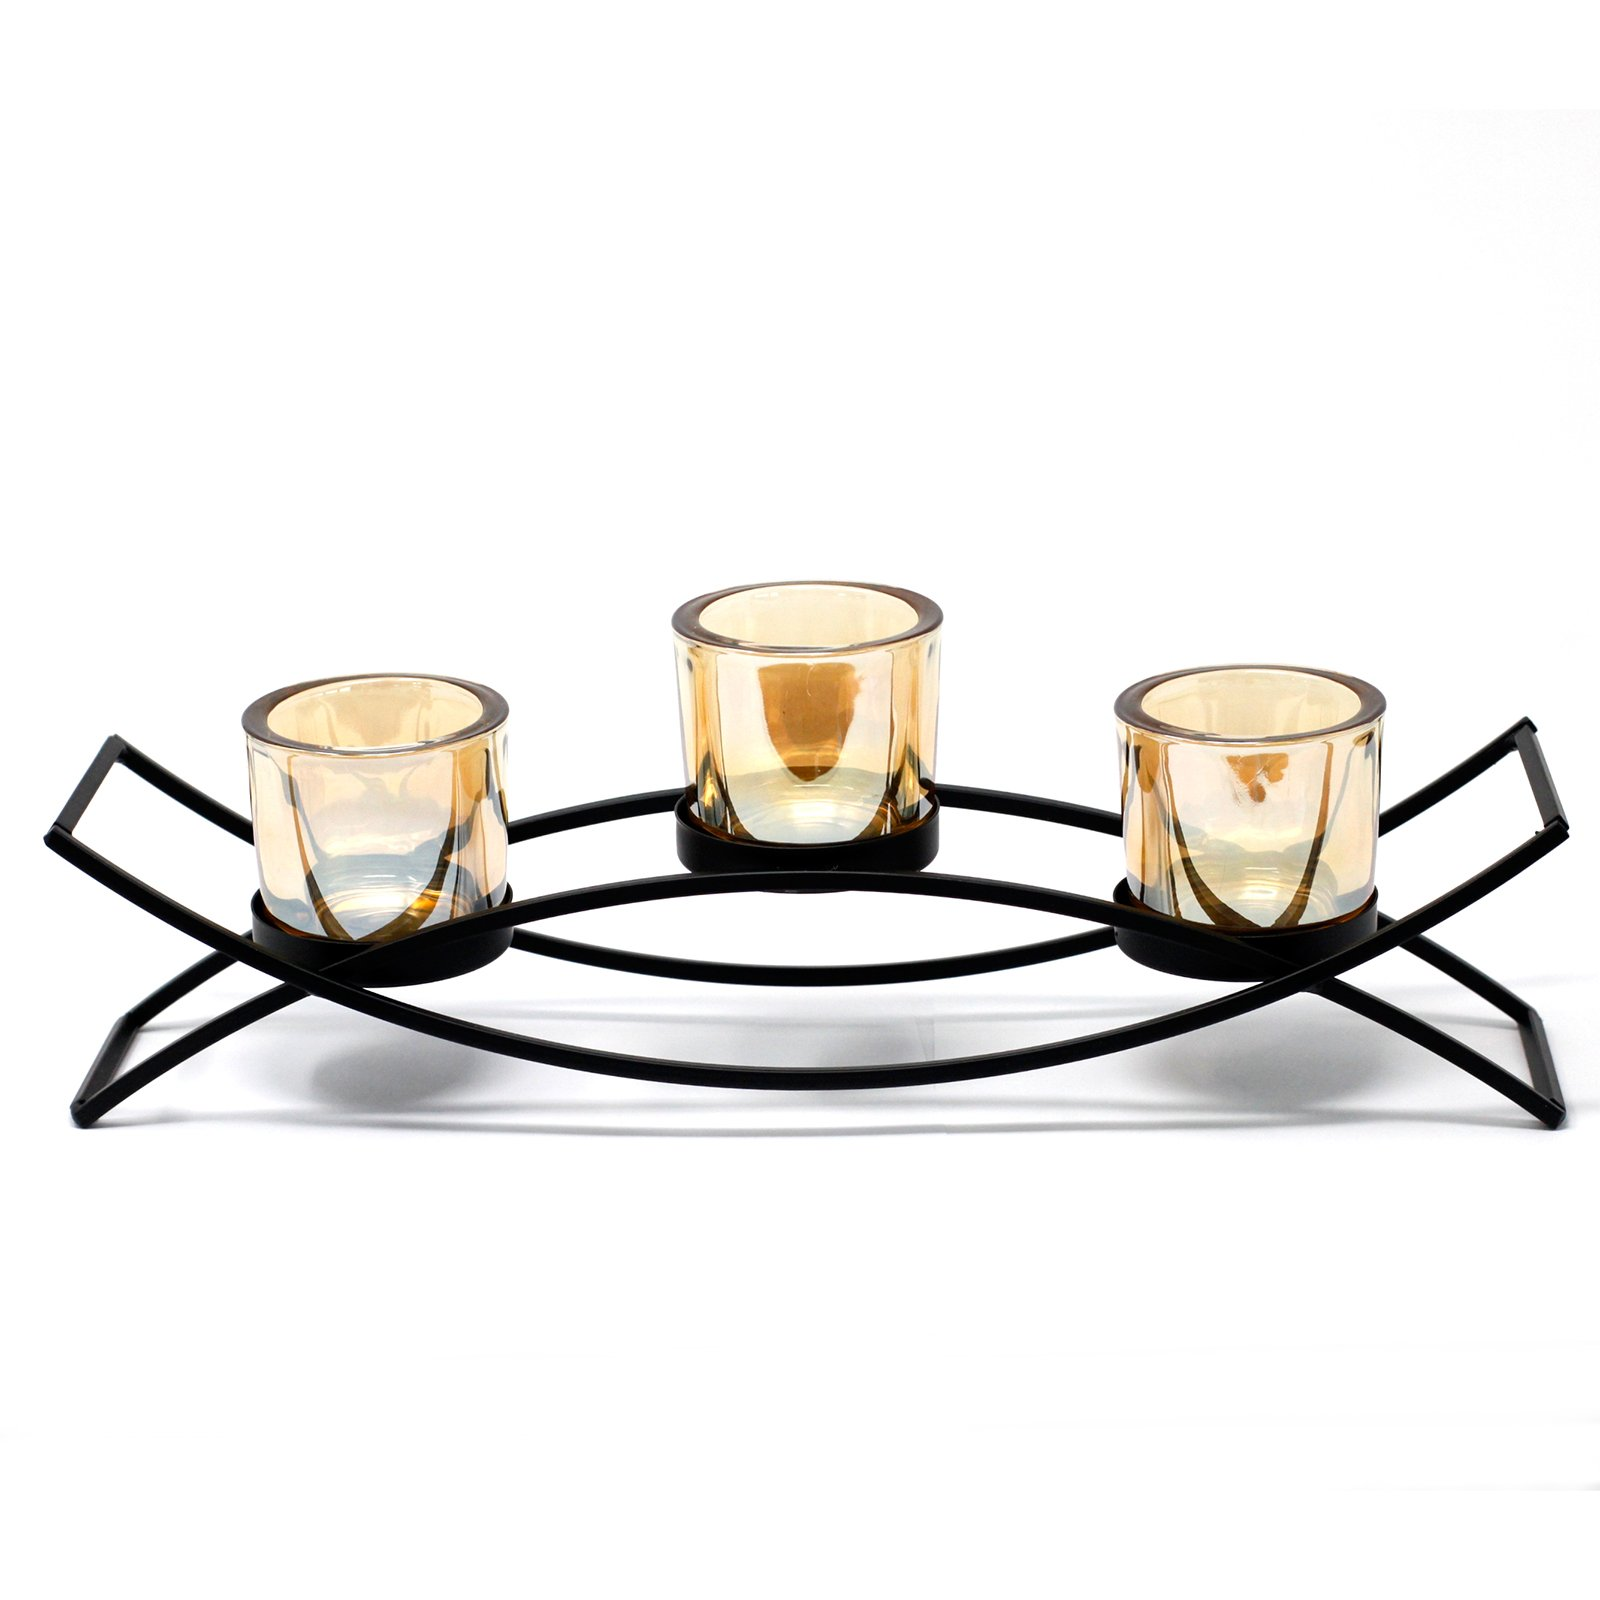 Centrepiece Iron Votive Candle Holder 3 Cup Silluethe Awgifts Giftware Wholesale Awgifts Europe Wholesale Giftware And Aromatherapy Supplier